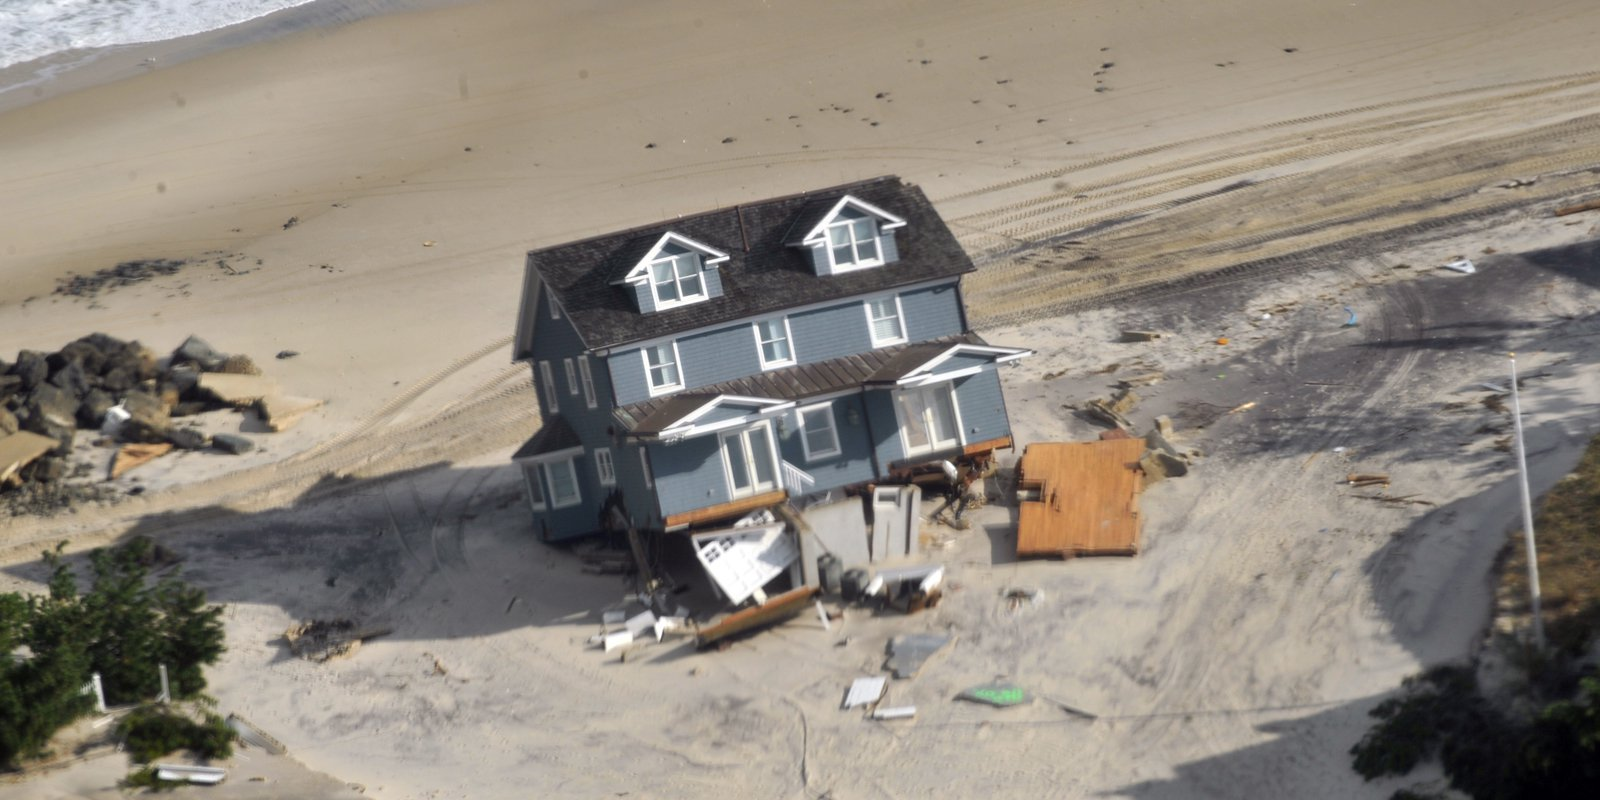 Home damage on the Jersey Shore after Hurricane Sandy